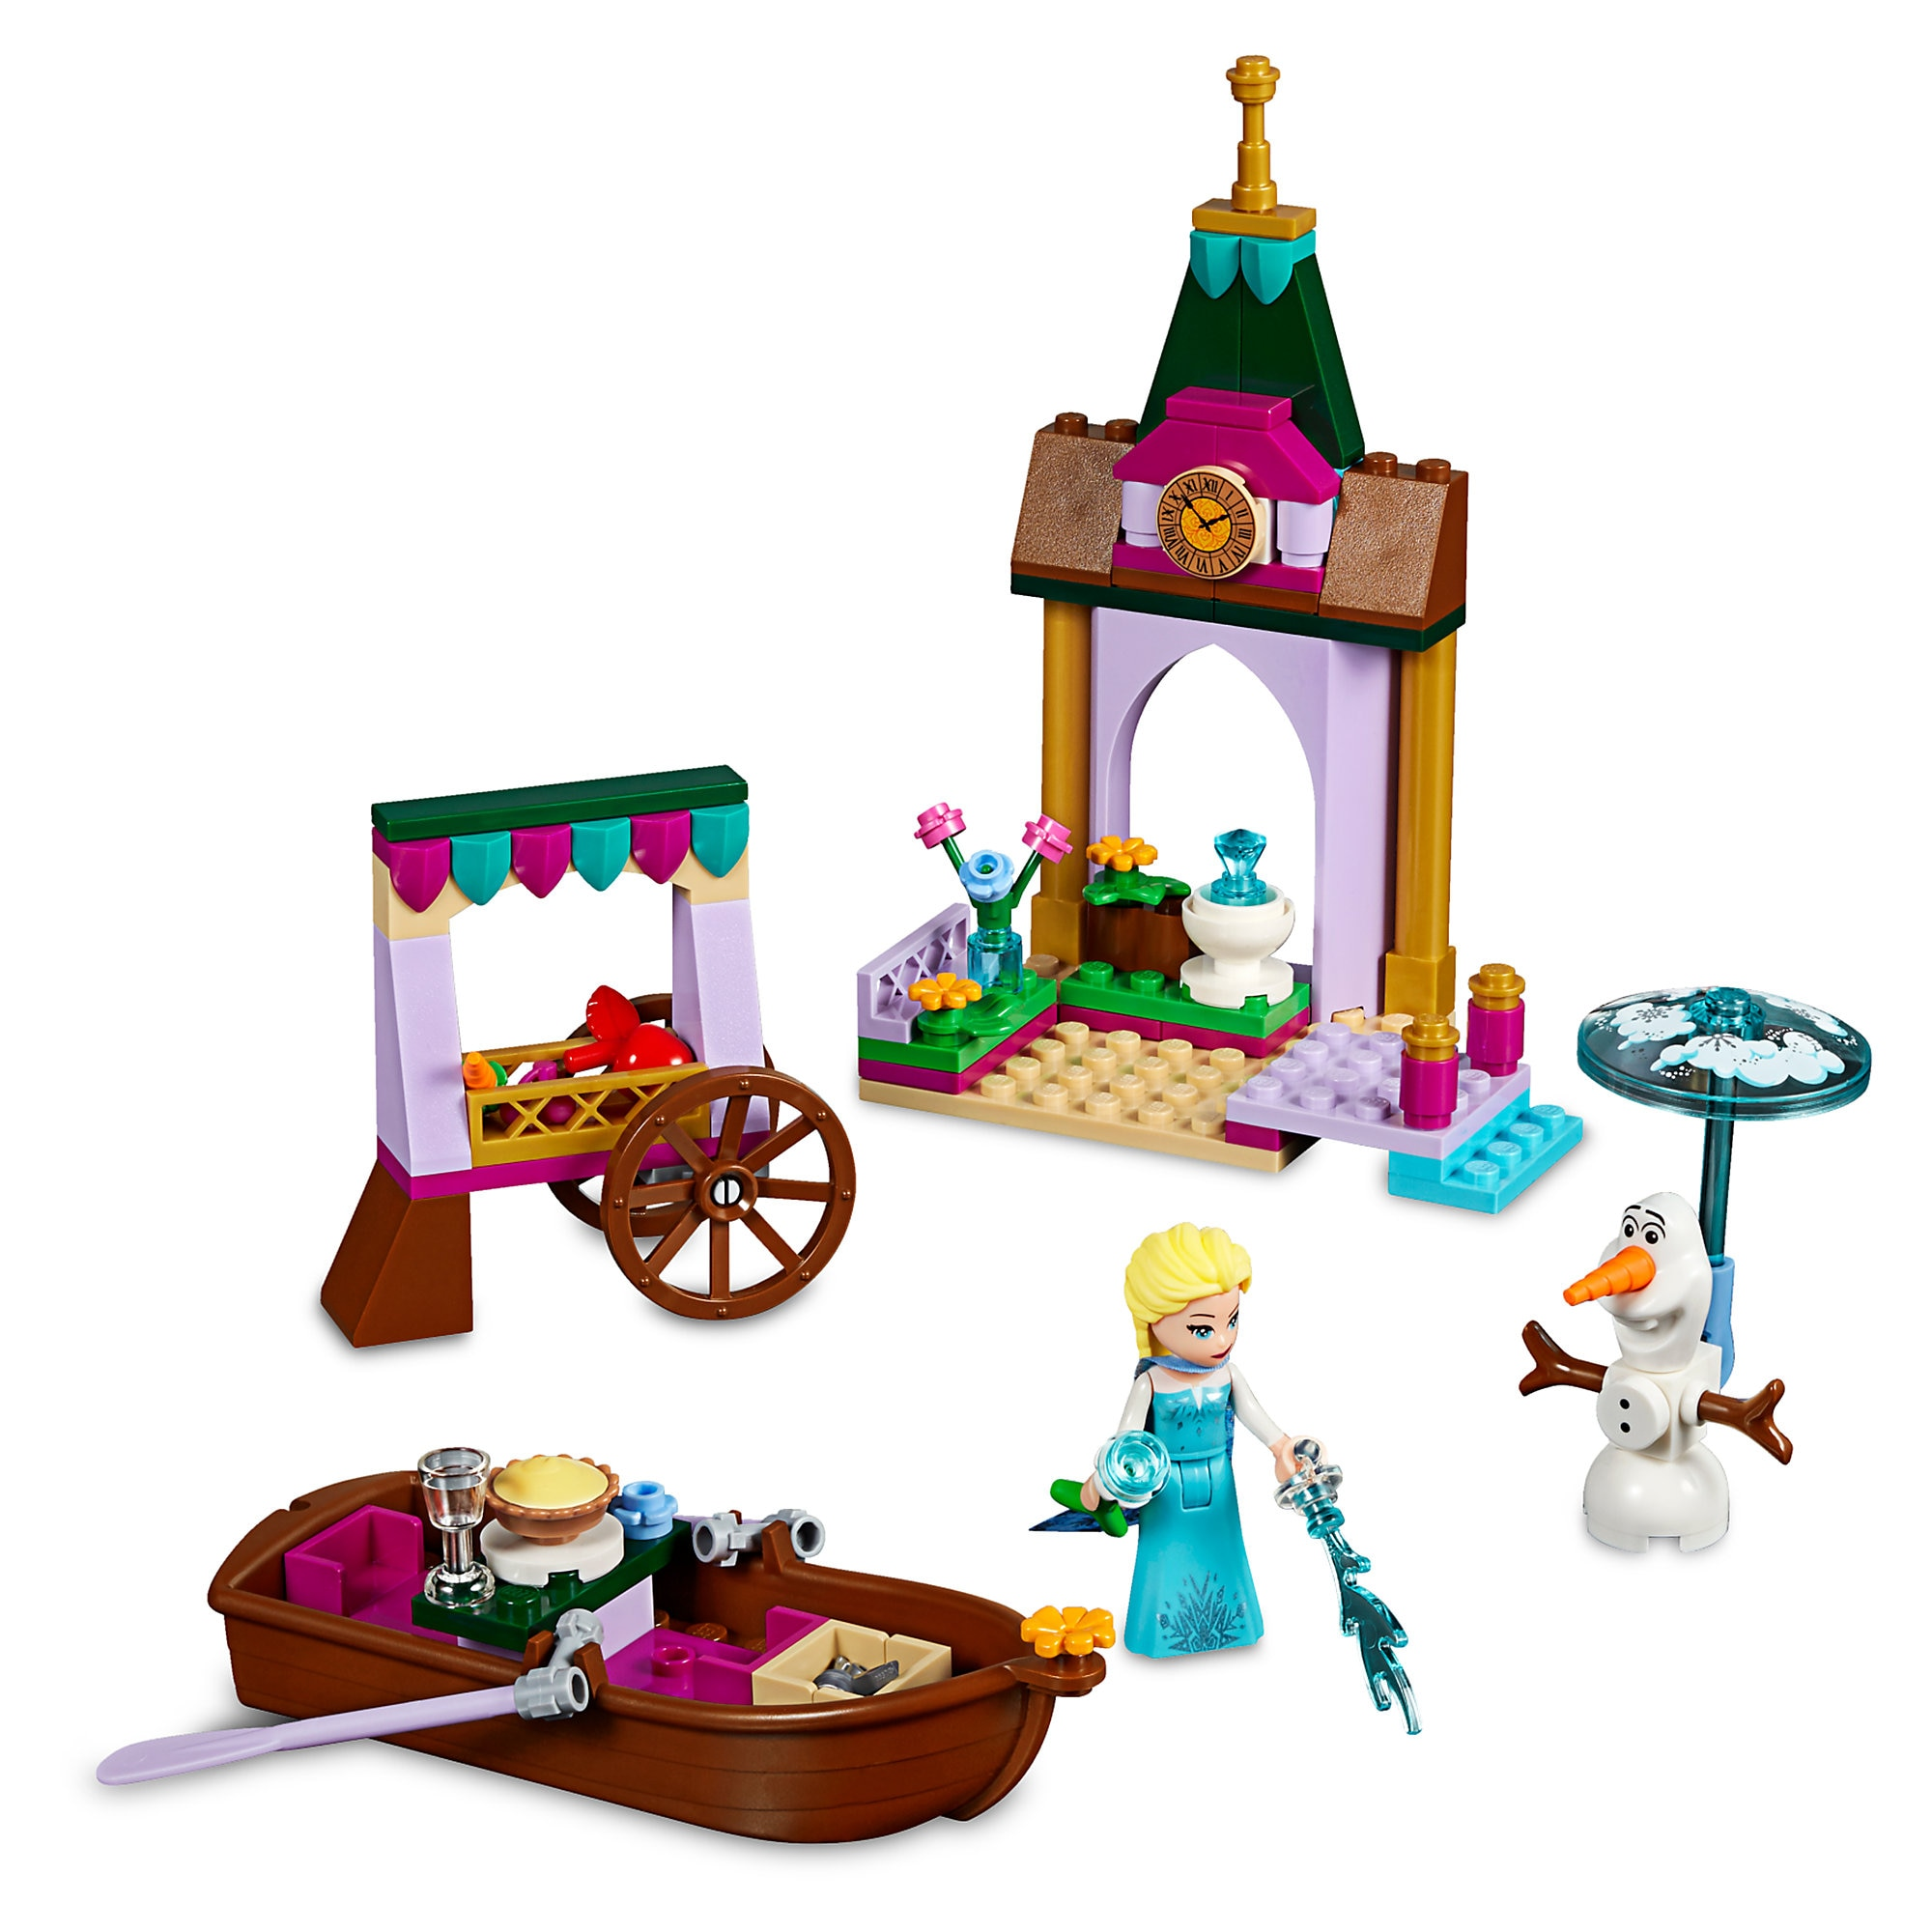 Elsa's Market Adventure Playset by LEGO